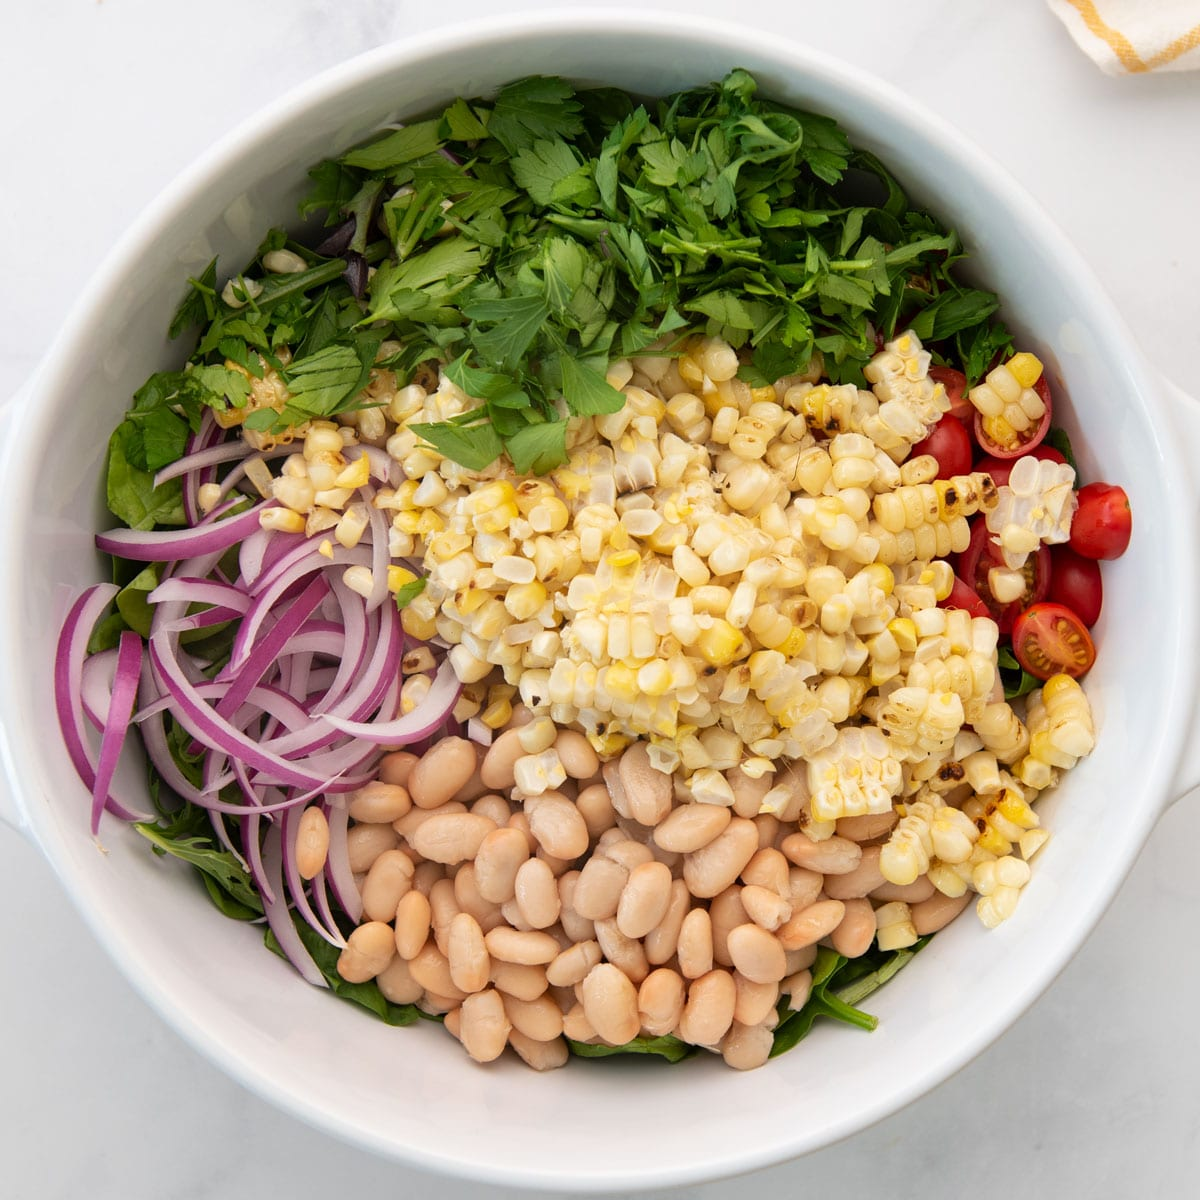 ingredients for summer market salad in large mixing bowl